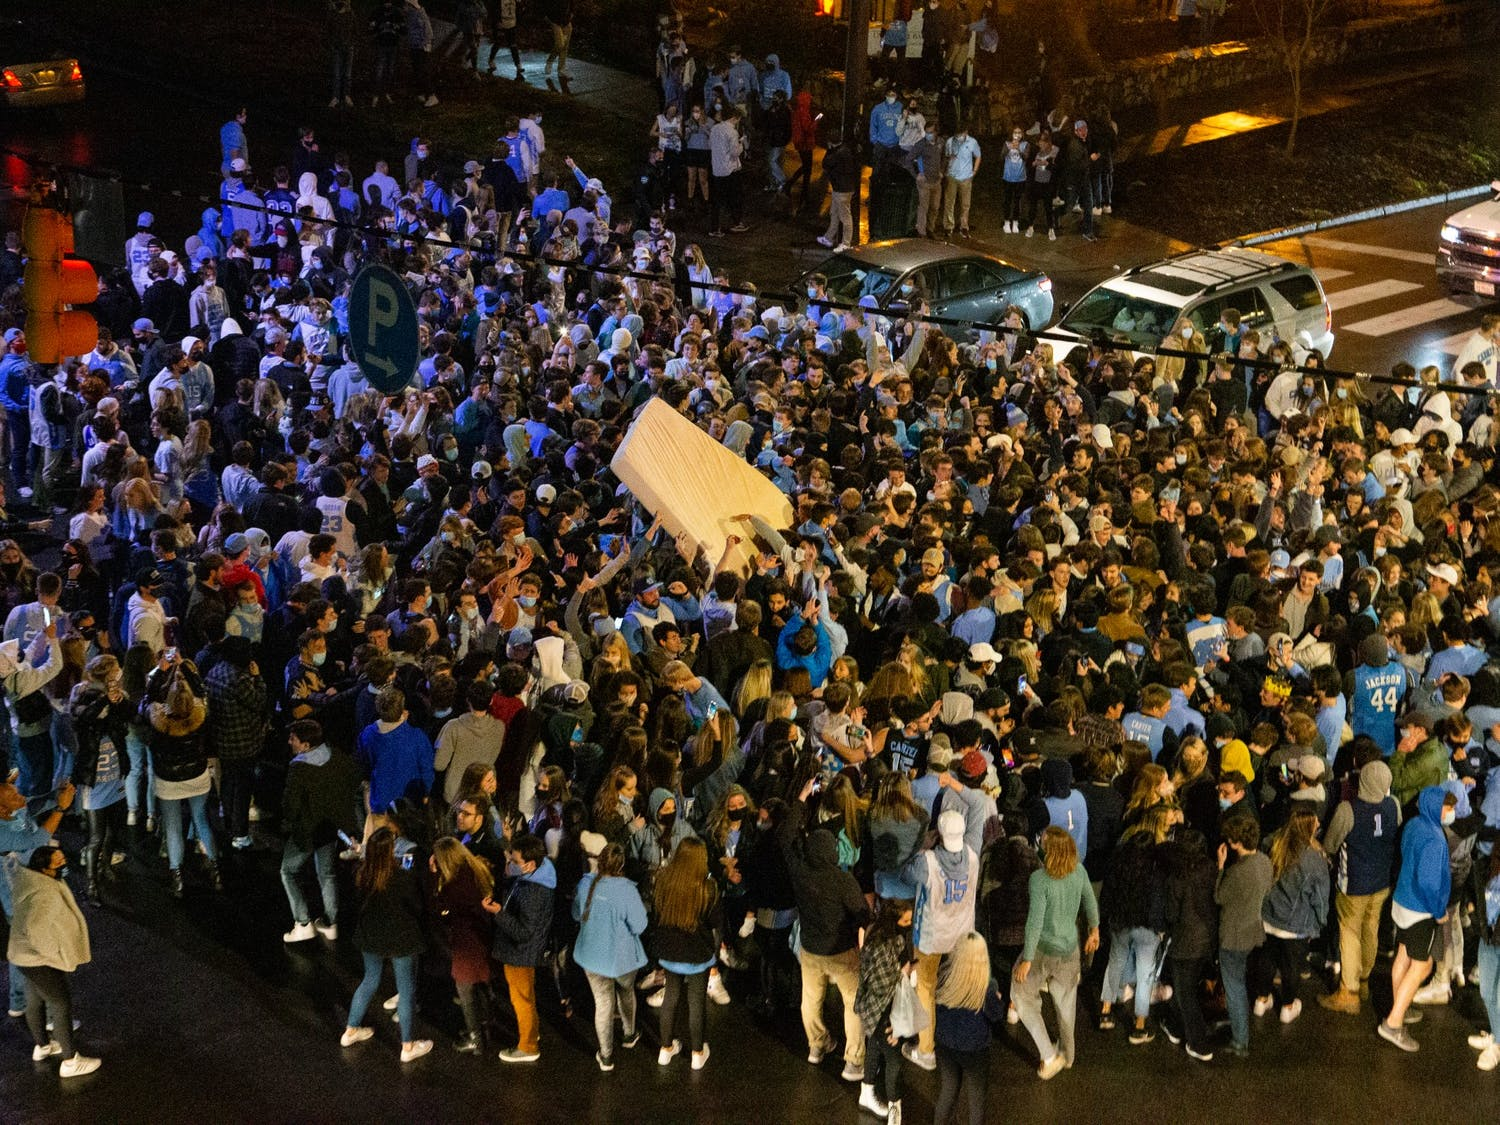 UNC fans rush Franklin Street after UNC's basketball team triumphs over Duke despite COVID-19 restrictions on Saturday, Feb. 6, 2021.